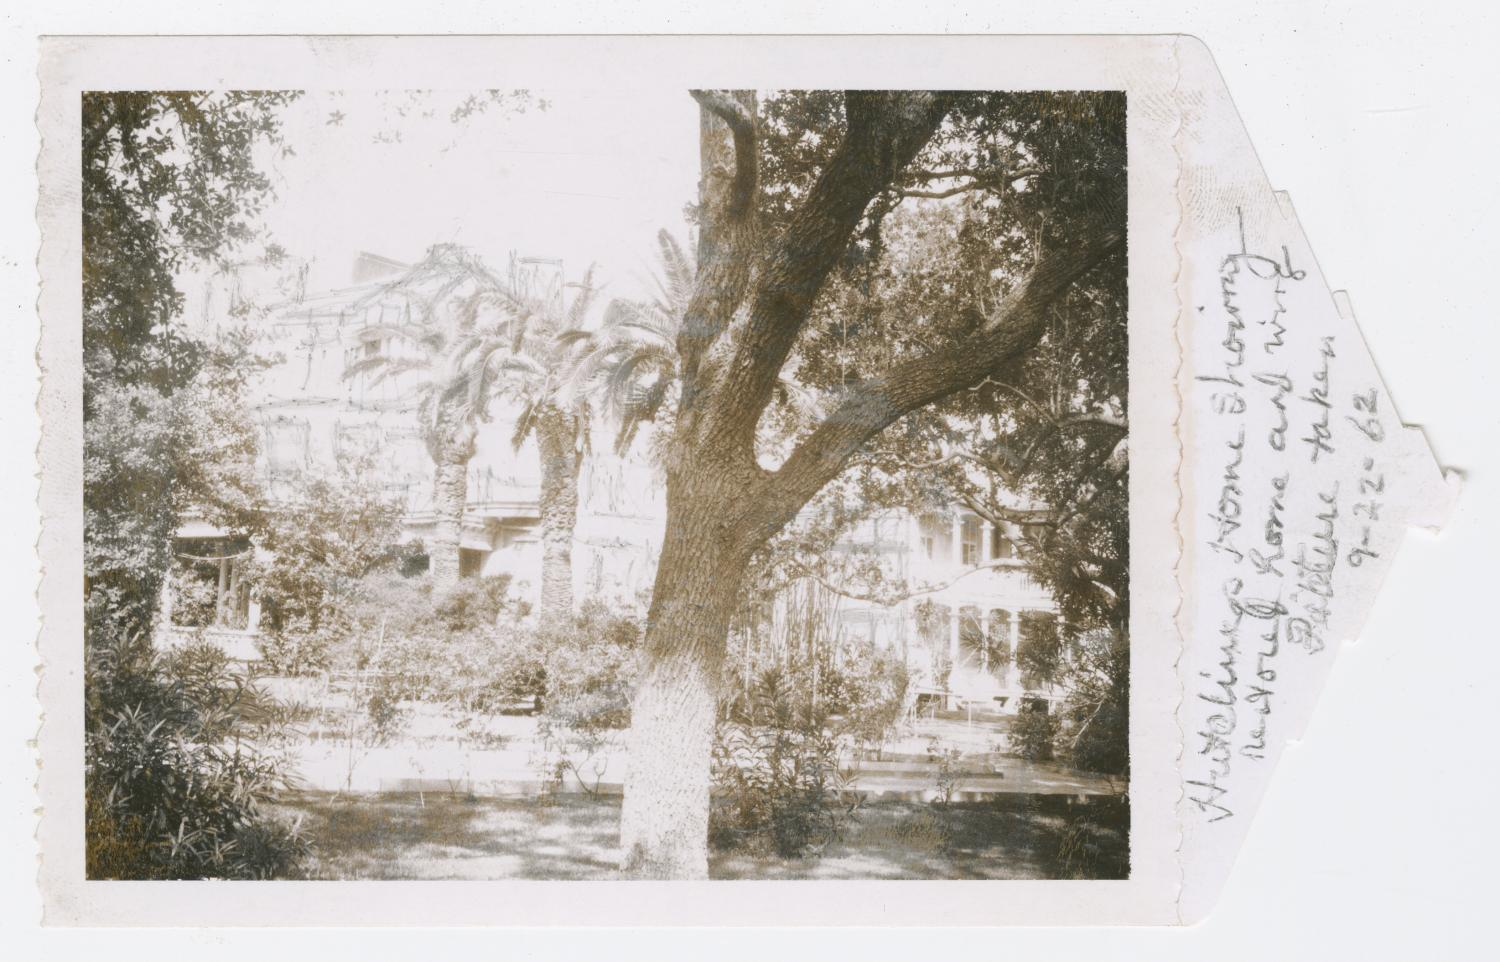 [Hutchings House Photograph #1]                                                                                                      [Sequence #]: 1 of 2